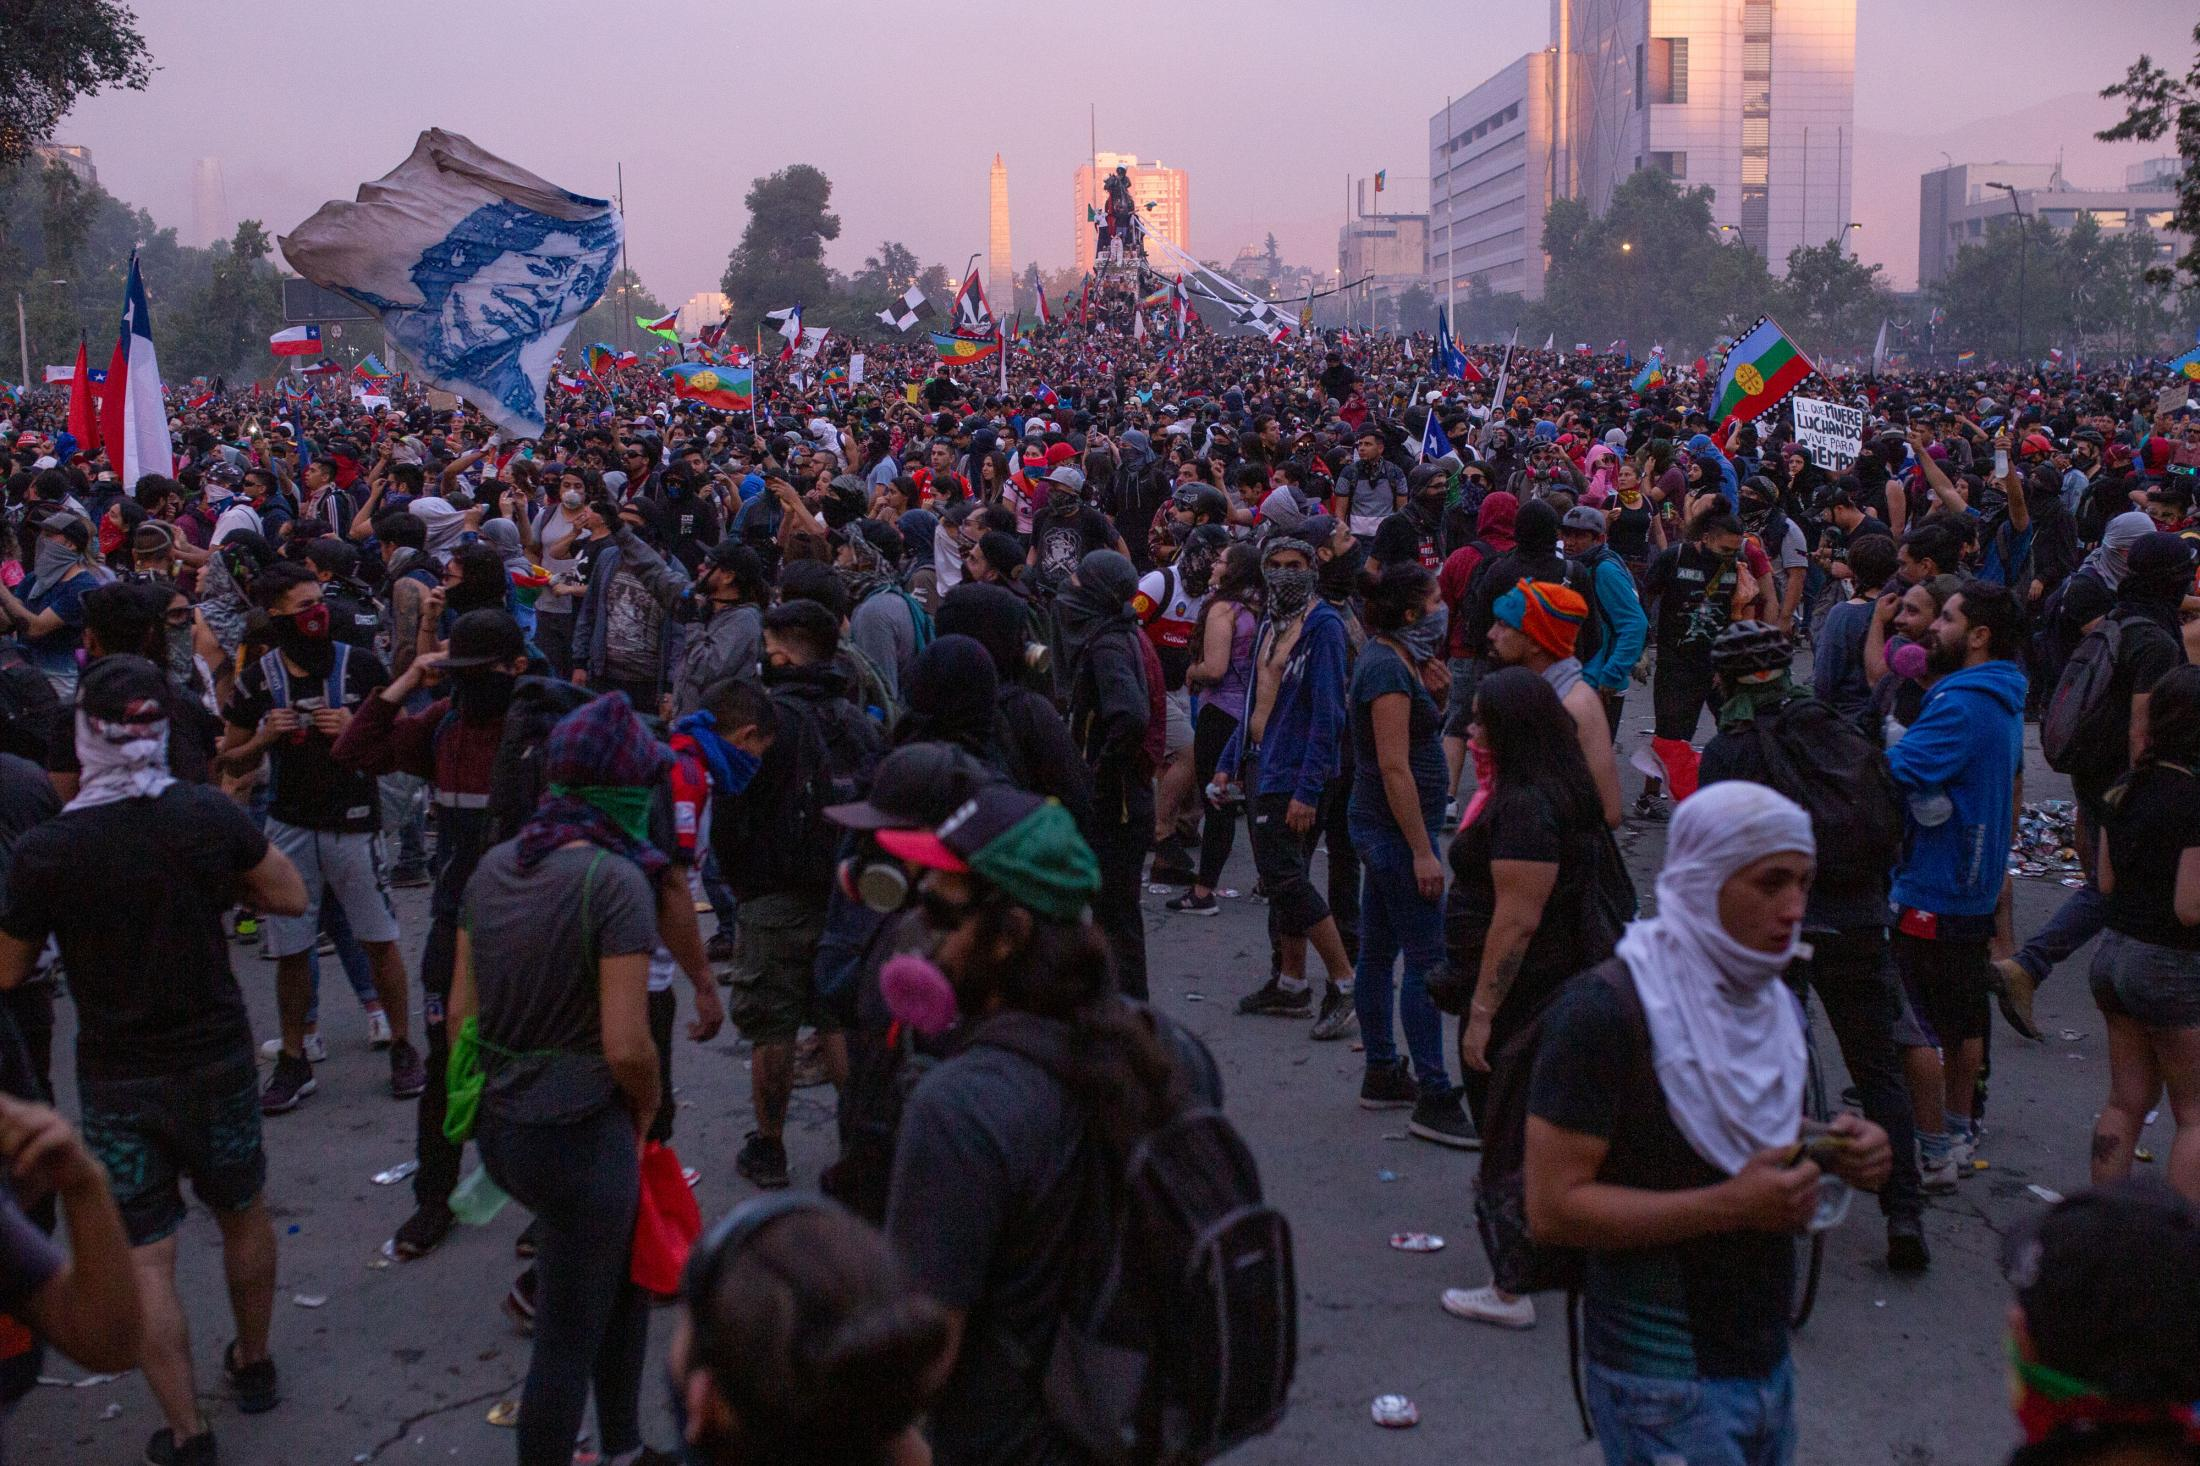 November 9, 2019. Thousands of people gather in the renamed Plaza Dignidad, the nerve center of the protests in Santiago during the social outbreak.